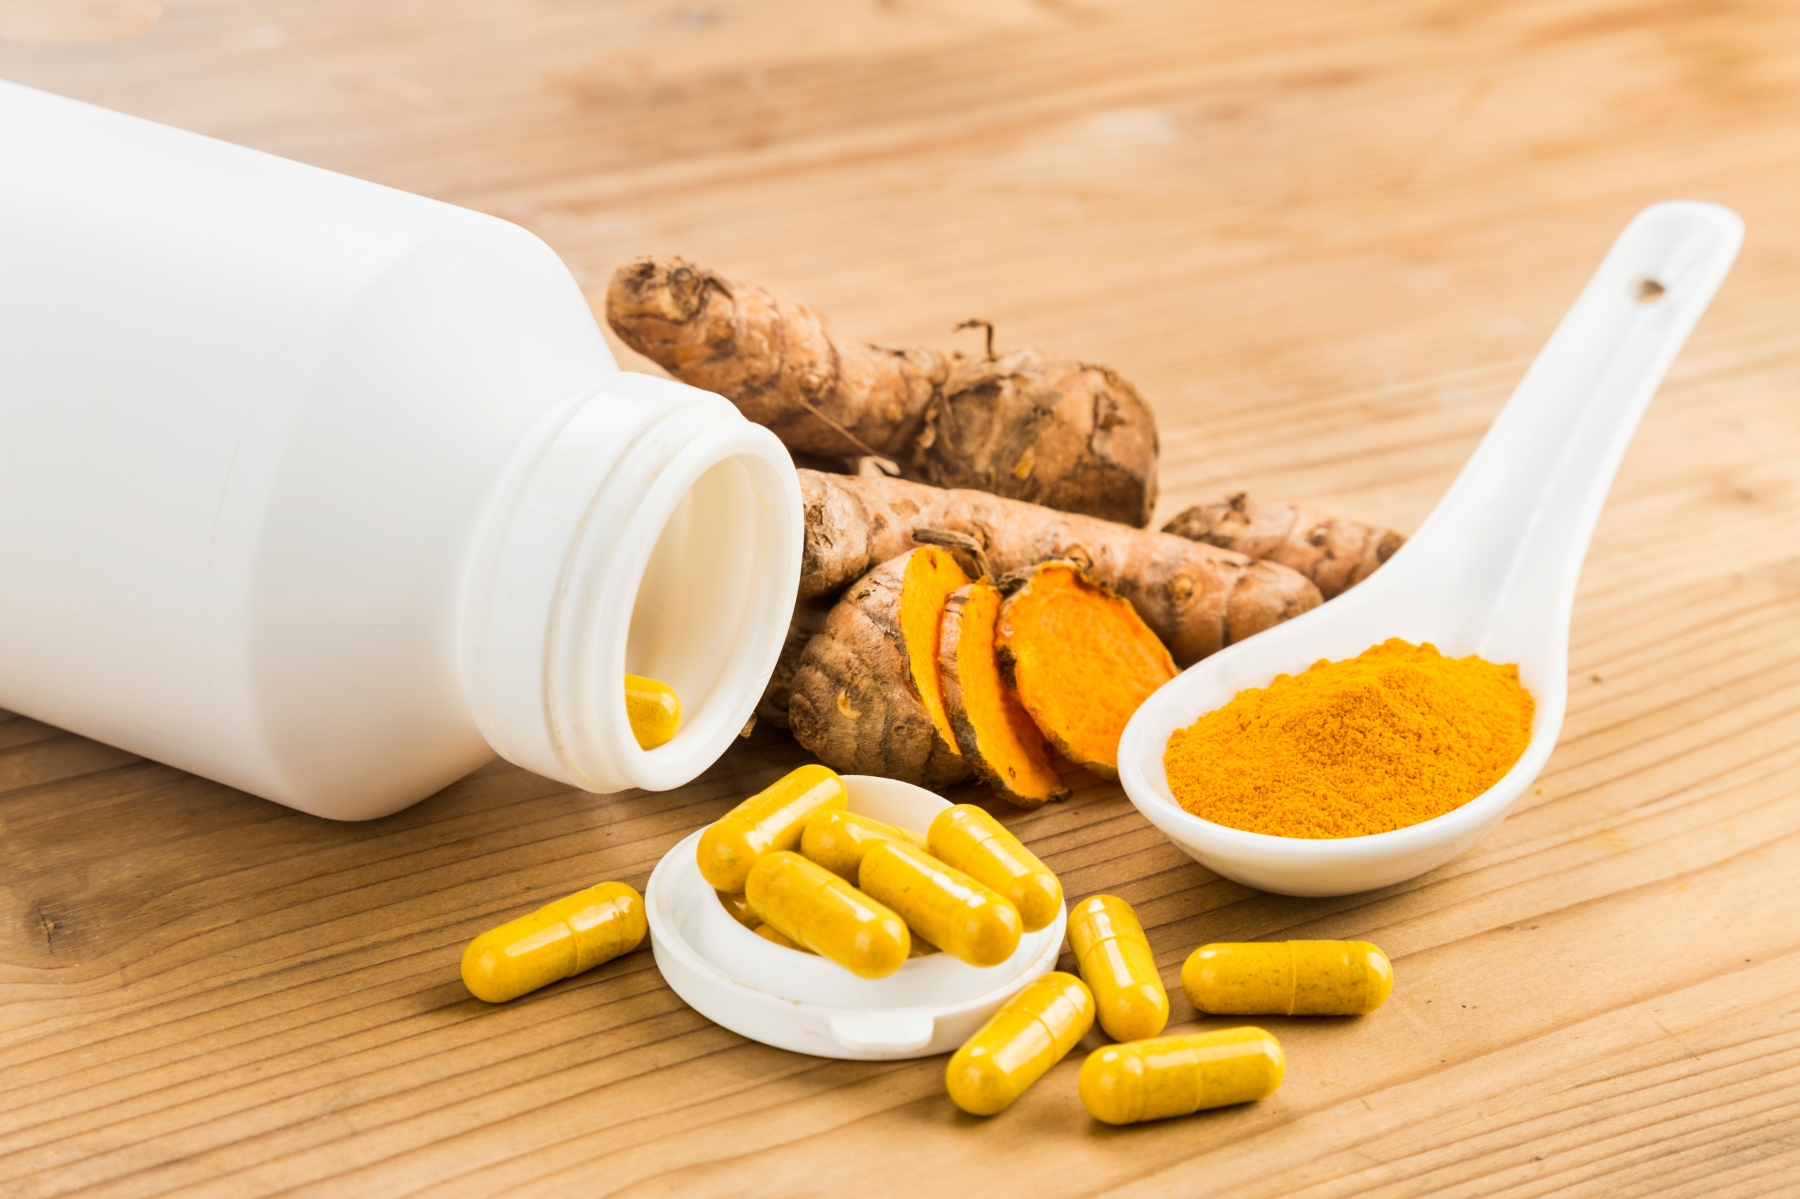 Homemade turmeric capsule from freshly grounded turmeric roots